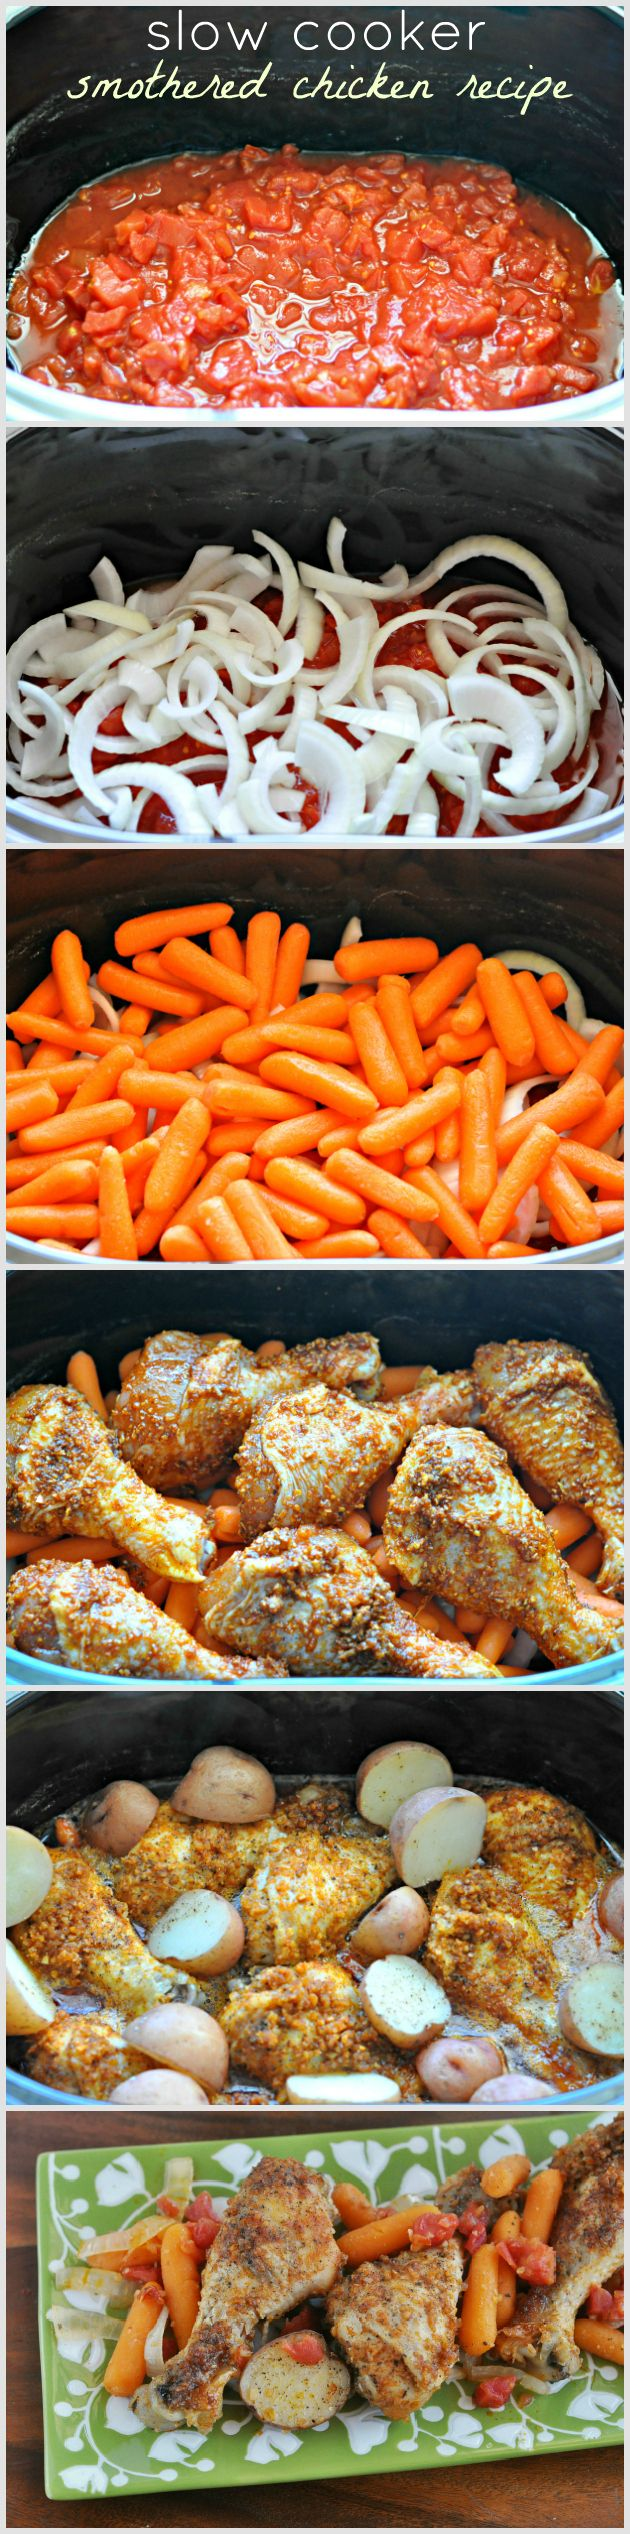 slow cooker smothered chicken recipe with chicken legs, carrots, onions, potatoes and @Erin B B B B B B B B B B McCormick Spice Swiss steak seasoning.